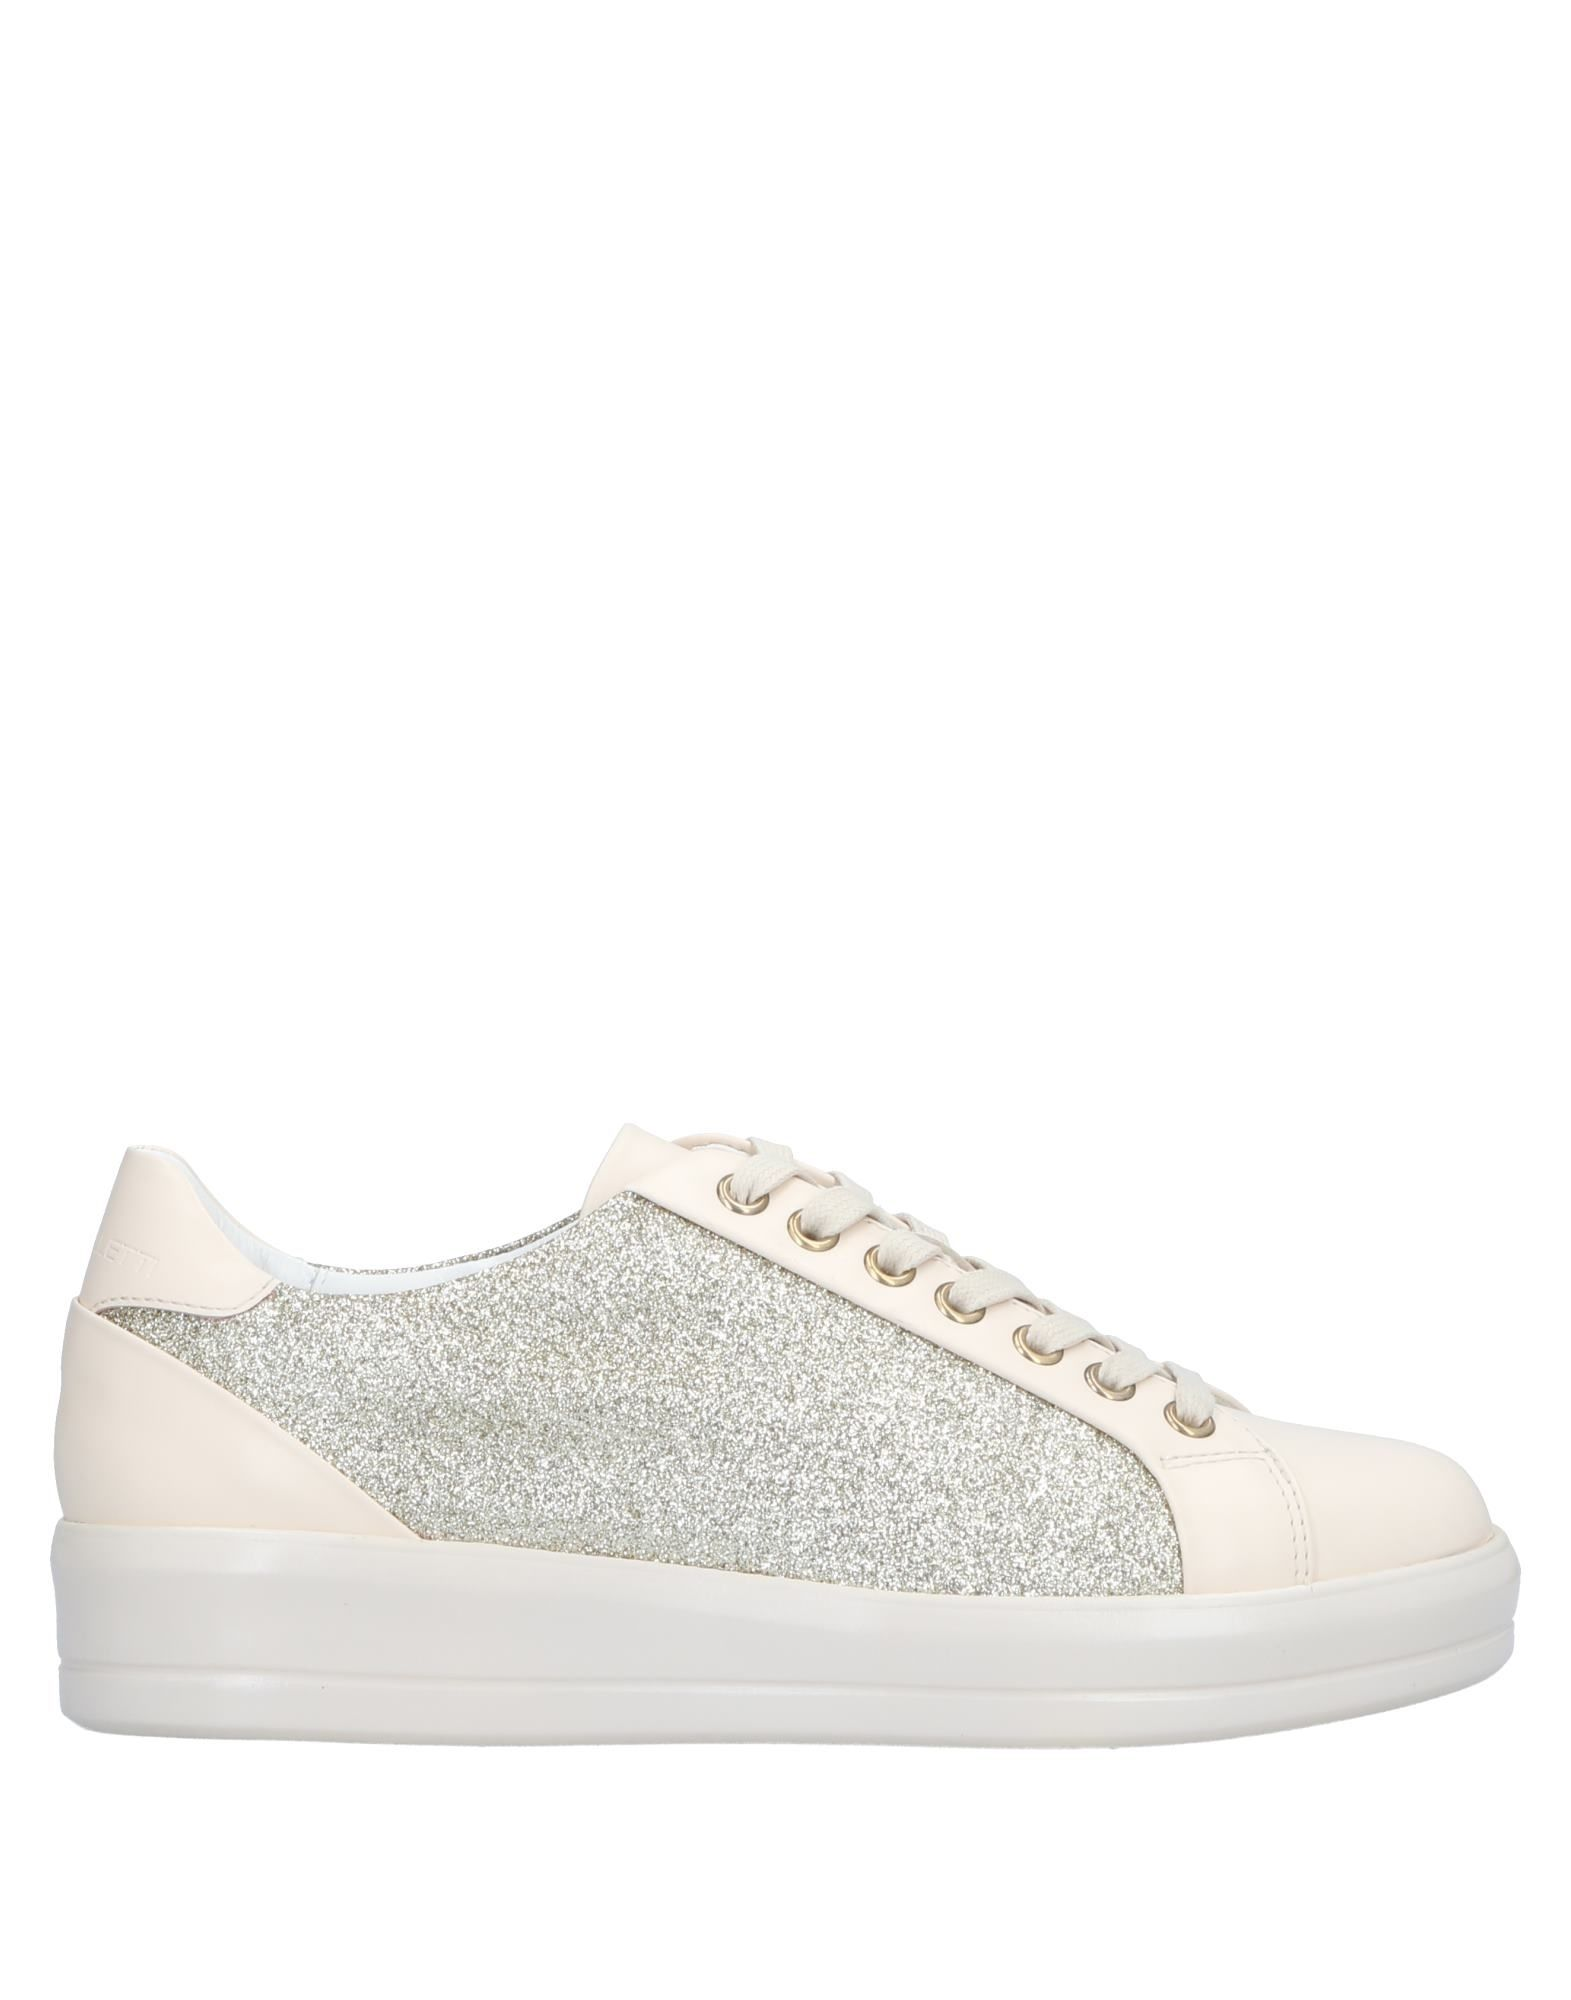 Cappelletti Sneakers - Women  Cappelletti Sneakers online on  Women Australia - 11517184ER 7f7894